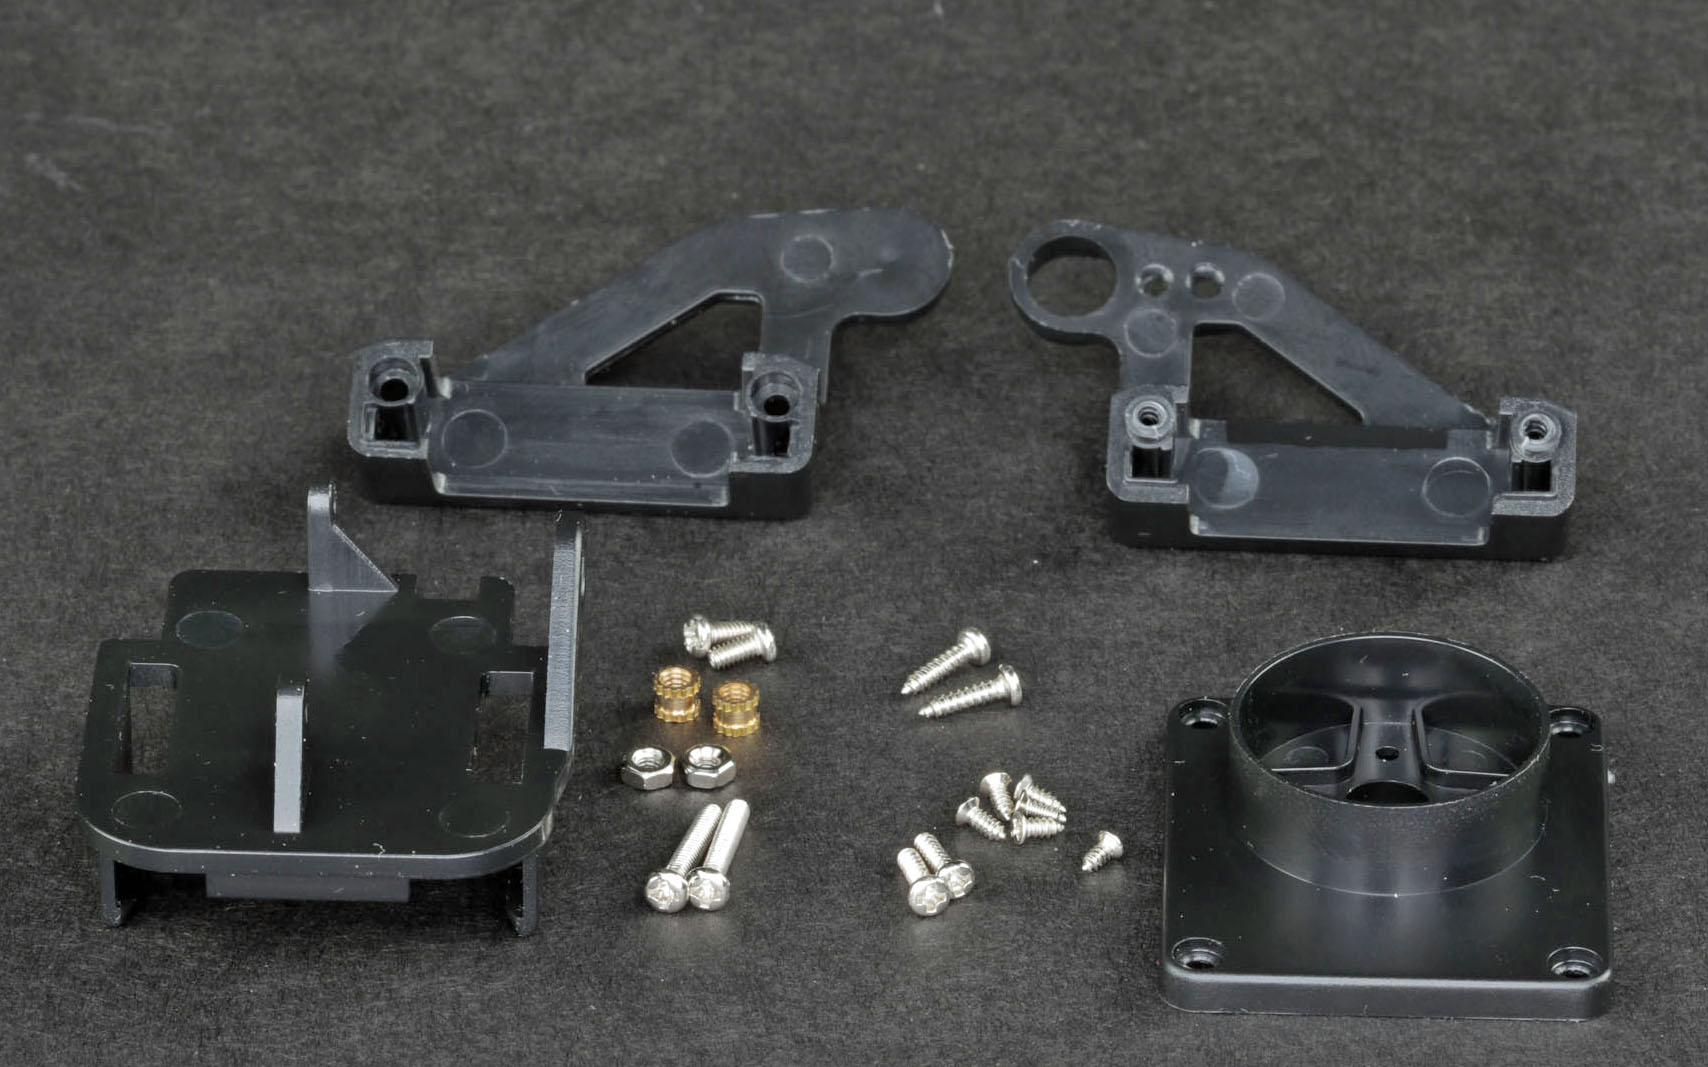 components_234A0921.jpg